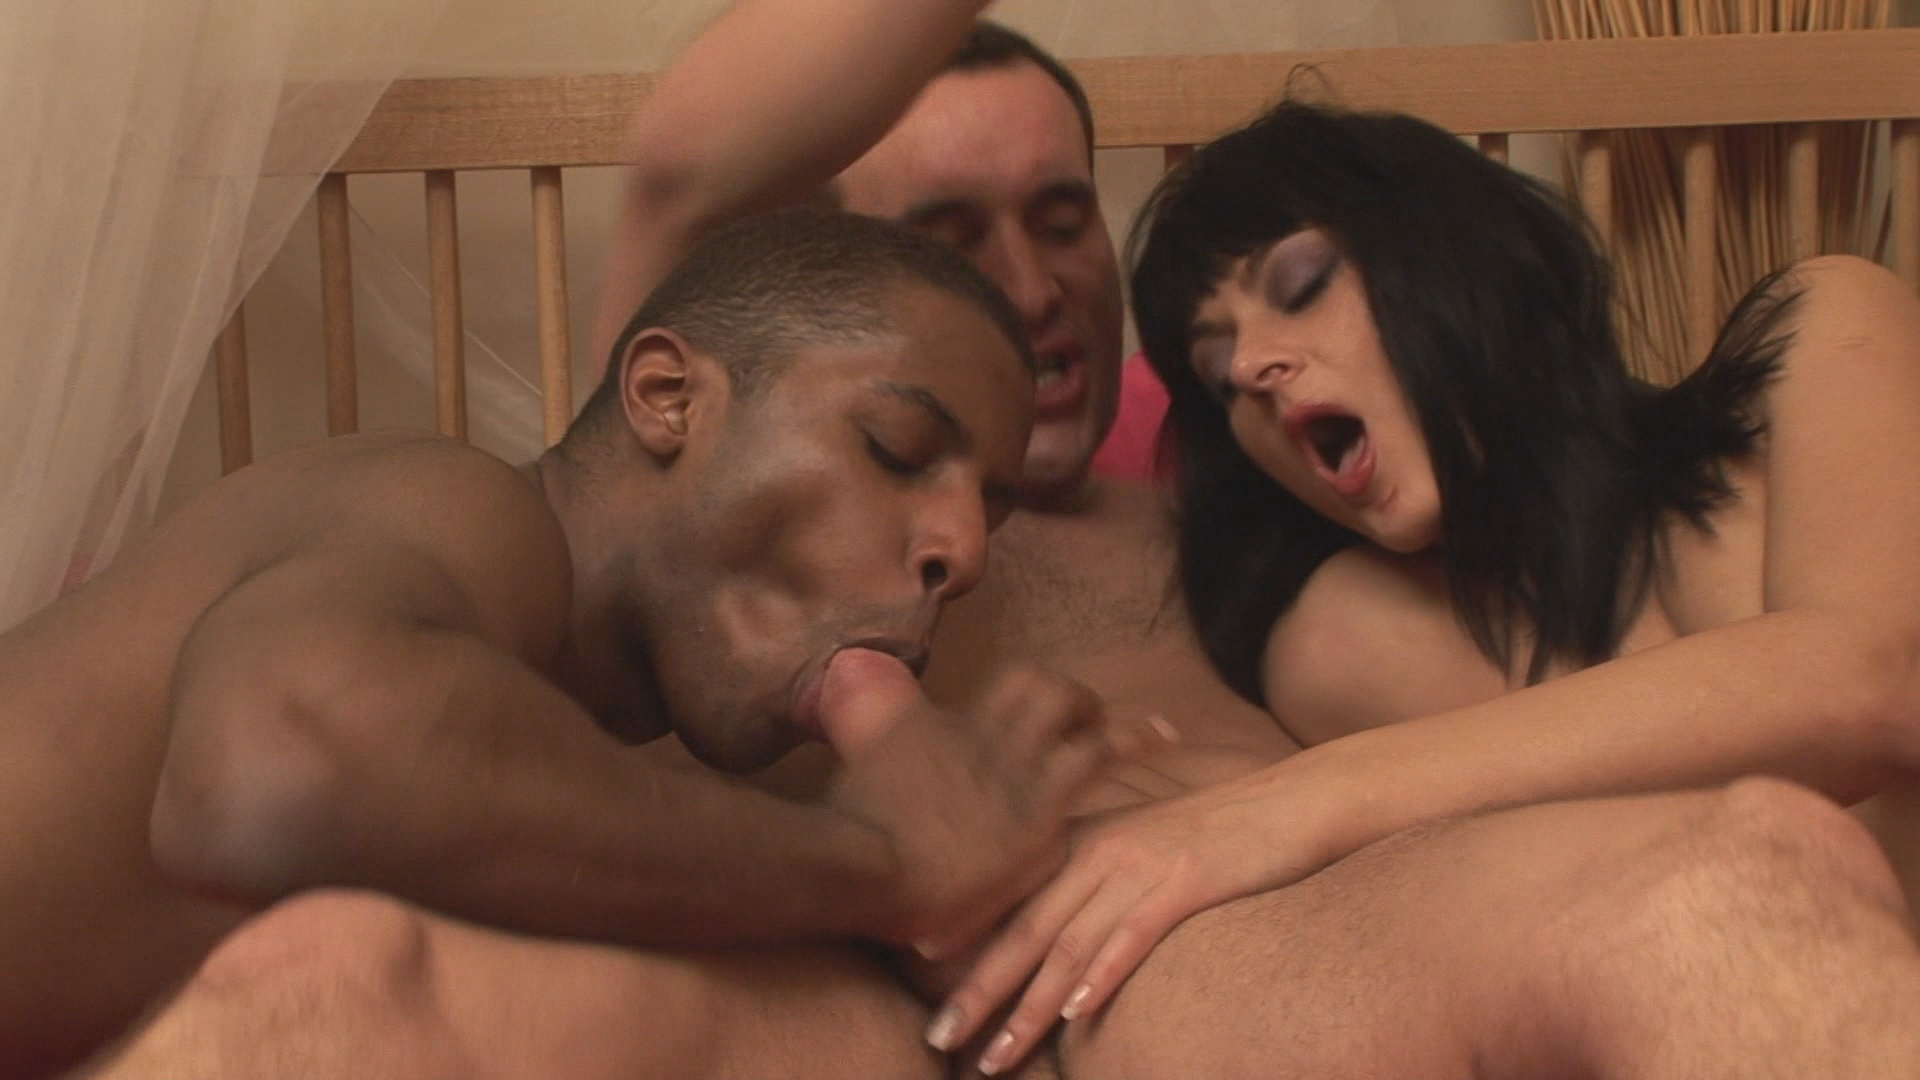 Interacial hot bisexual action